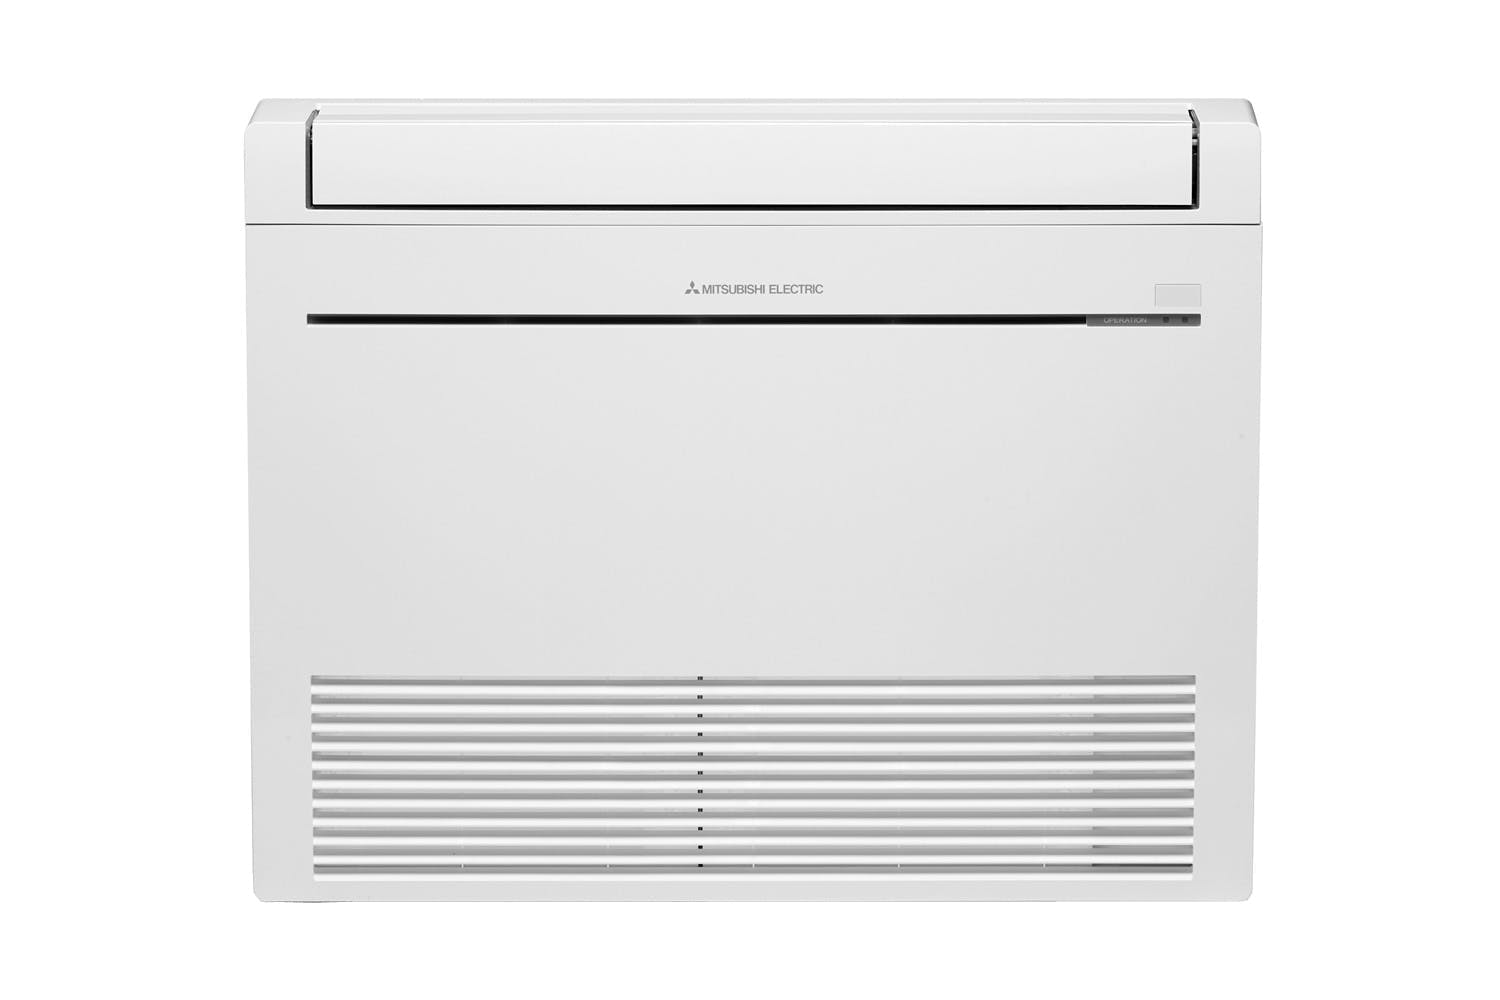 Mitsubishi Electric RapidHeat KJ60 Floor Console Heat Pump / Air Conditioner